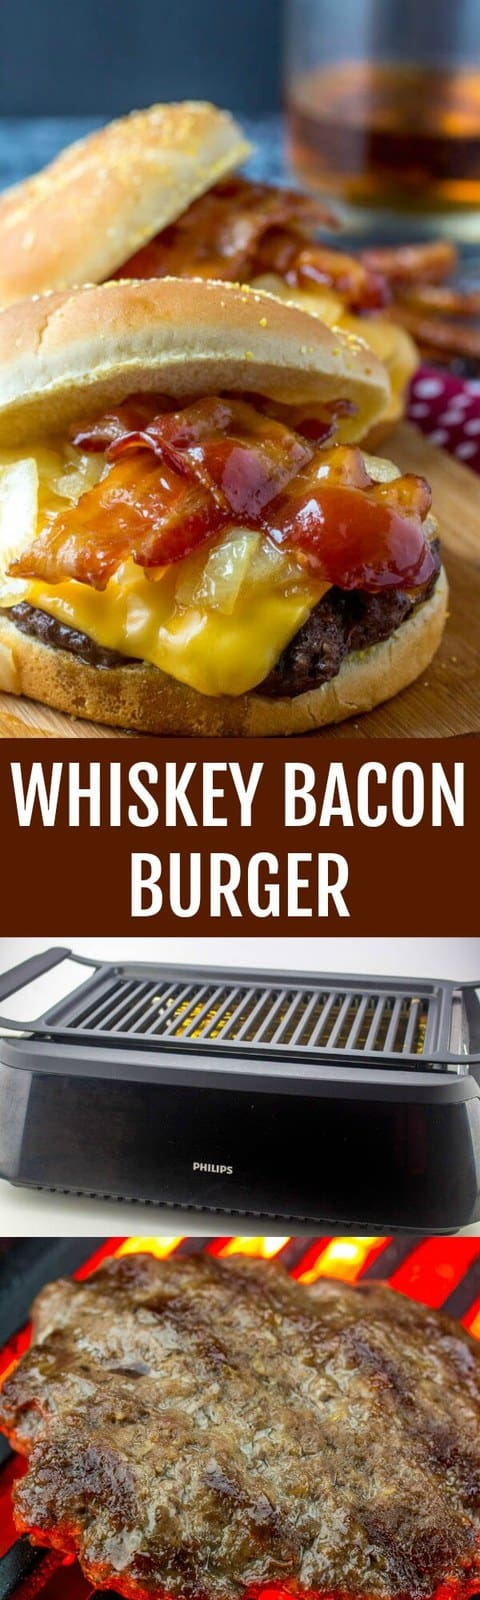 Tender and tasty these Whiskey Bacon Burgers are a quick and easy game day or gilling meal that you will want to make over and over again!